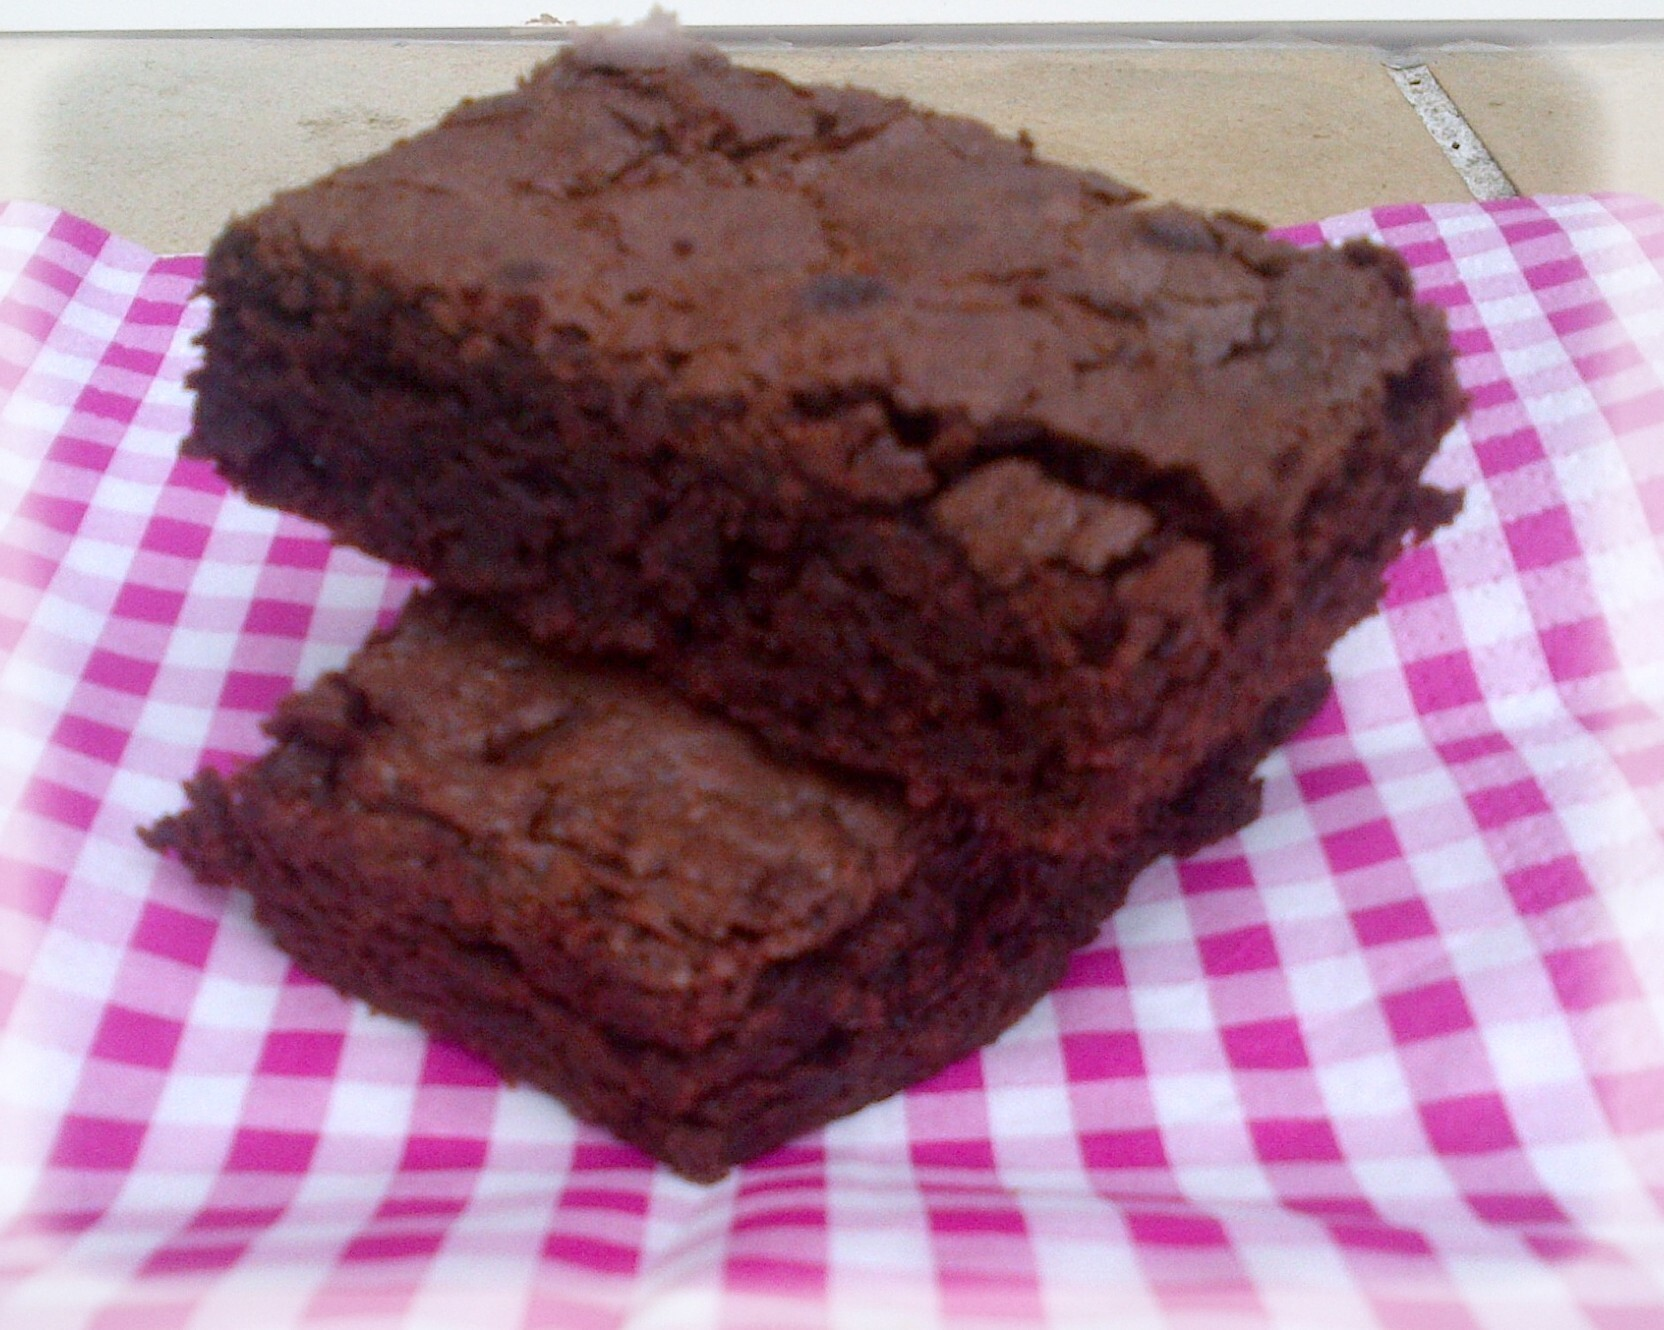 Brownie de Christophe Michalak sans son crémeux